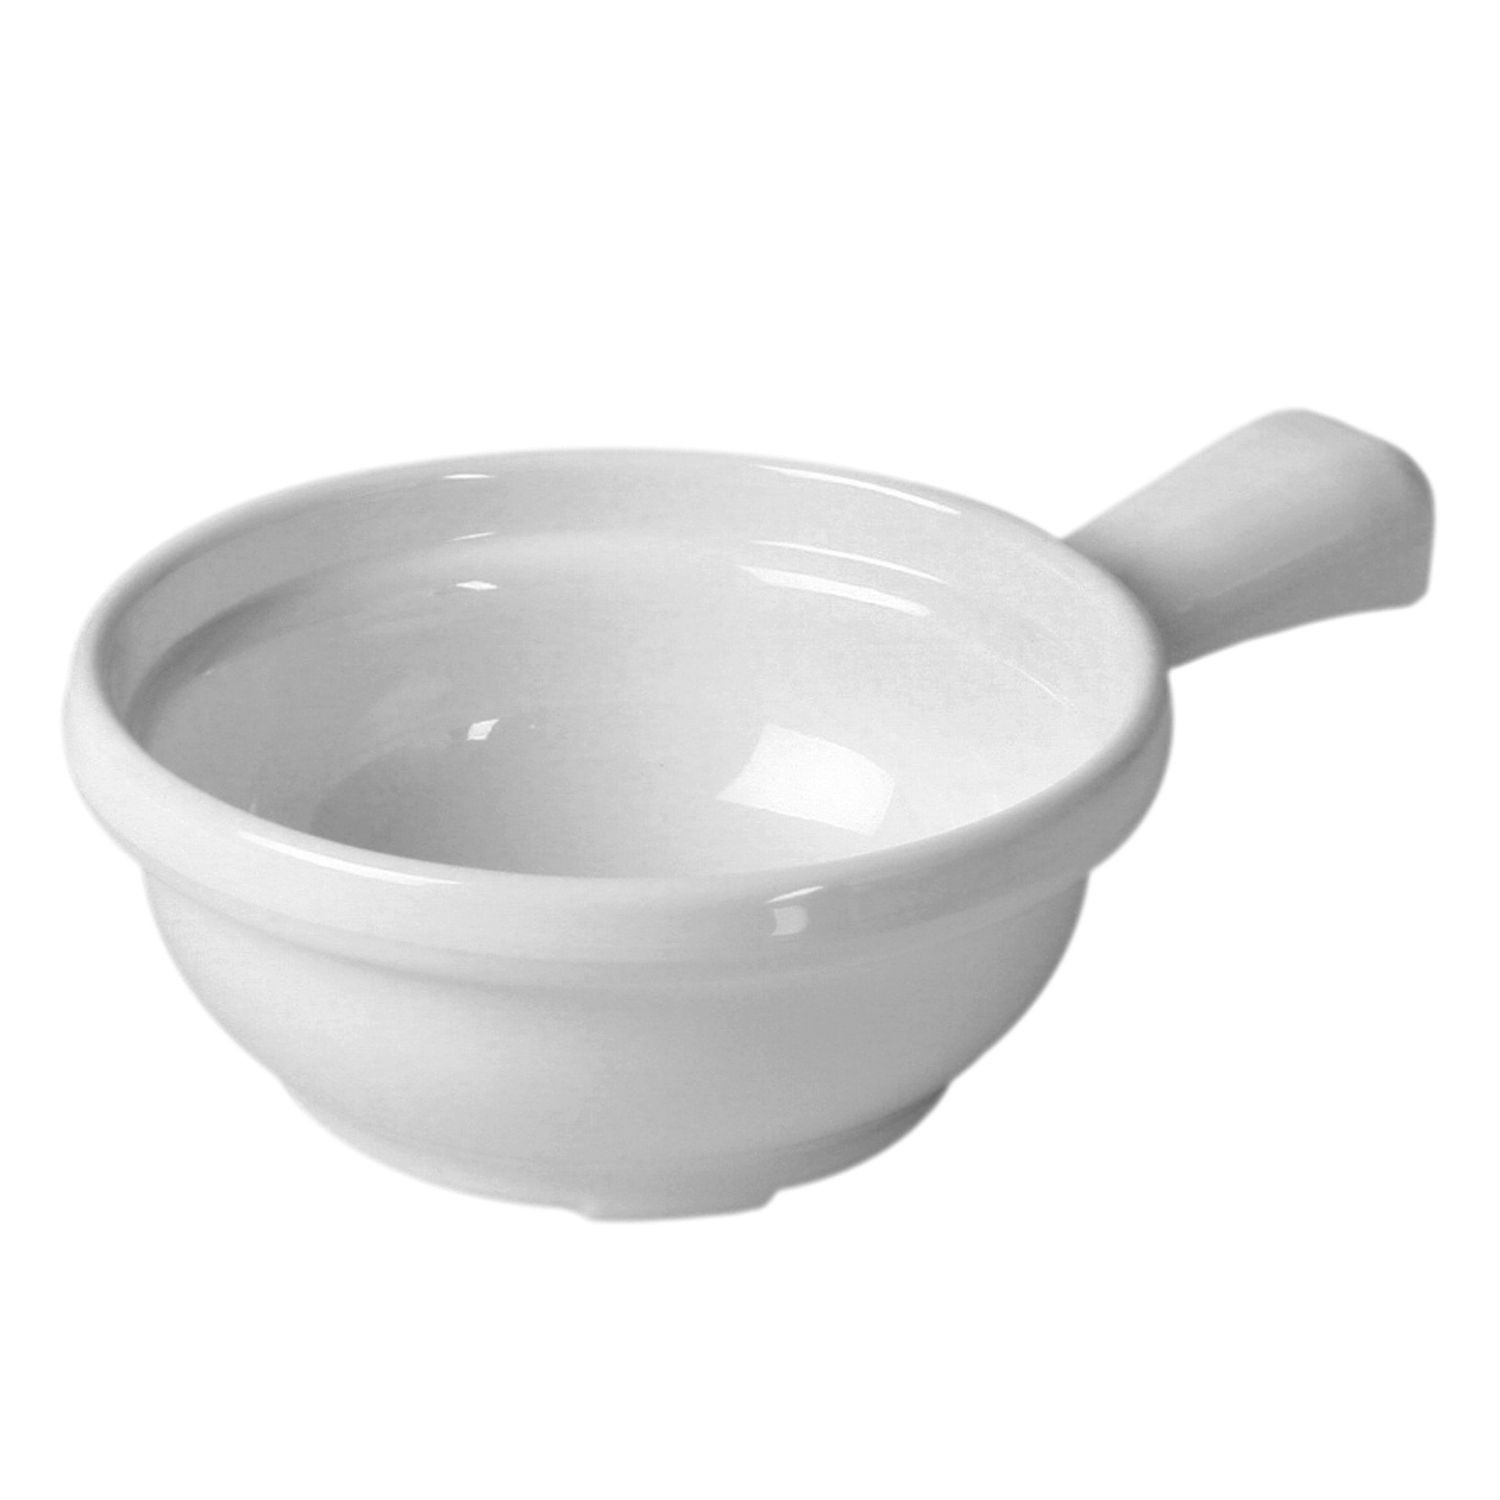 Thunder Group CR305W White Soup Bowl With Handle 10 oz - 1 doz